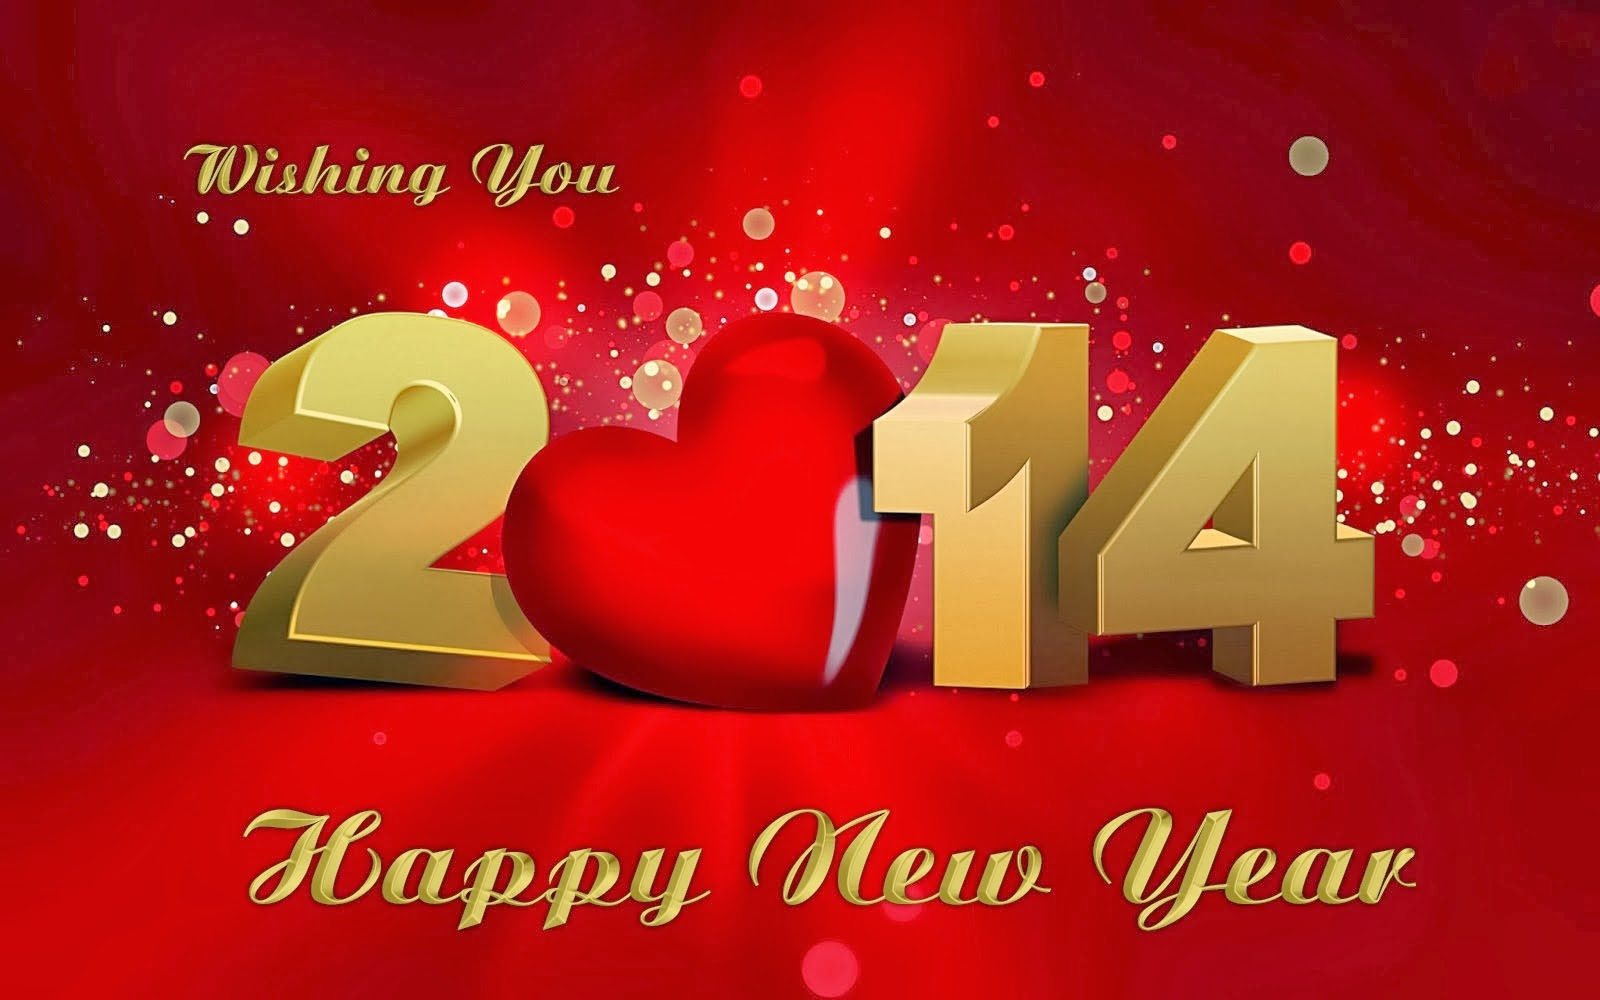 Happy New Year Wishes Quotes.9 Spiritual Happy New Year Greeting Cards 2014